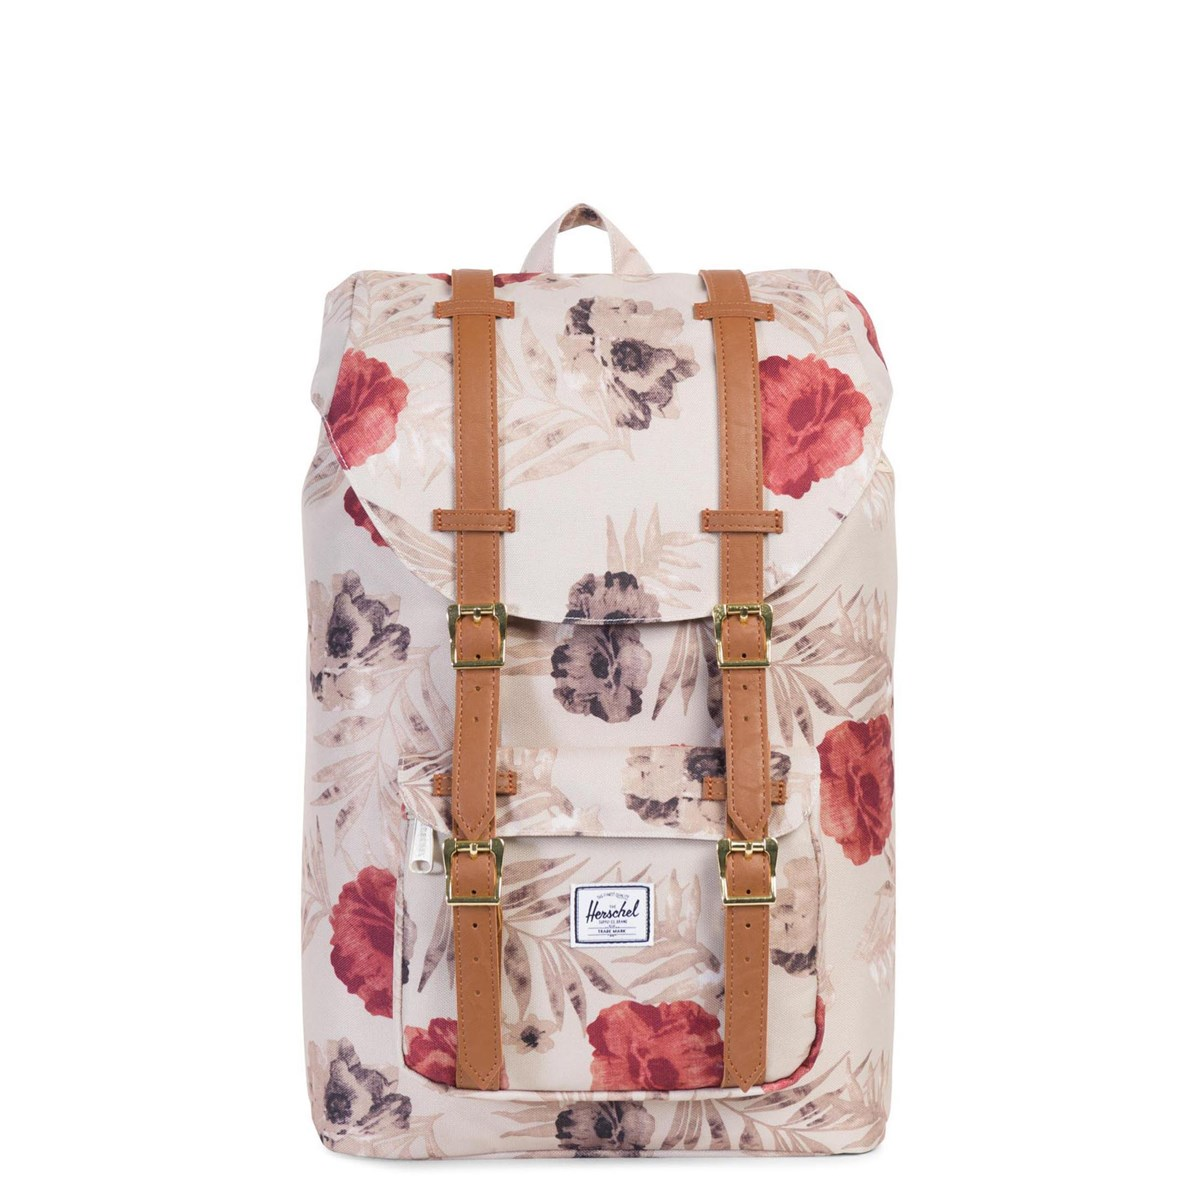 6a737c2b039 Little America Mid Volume Beige Floral Backpack. Previous. default view ...